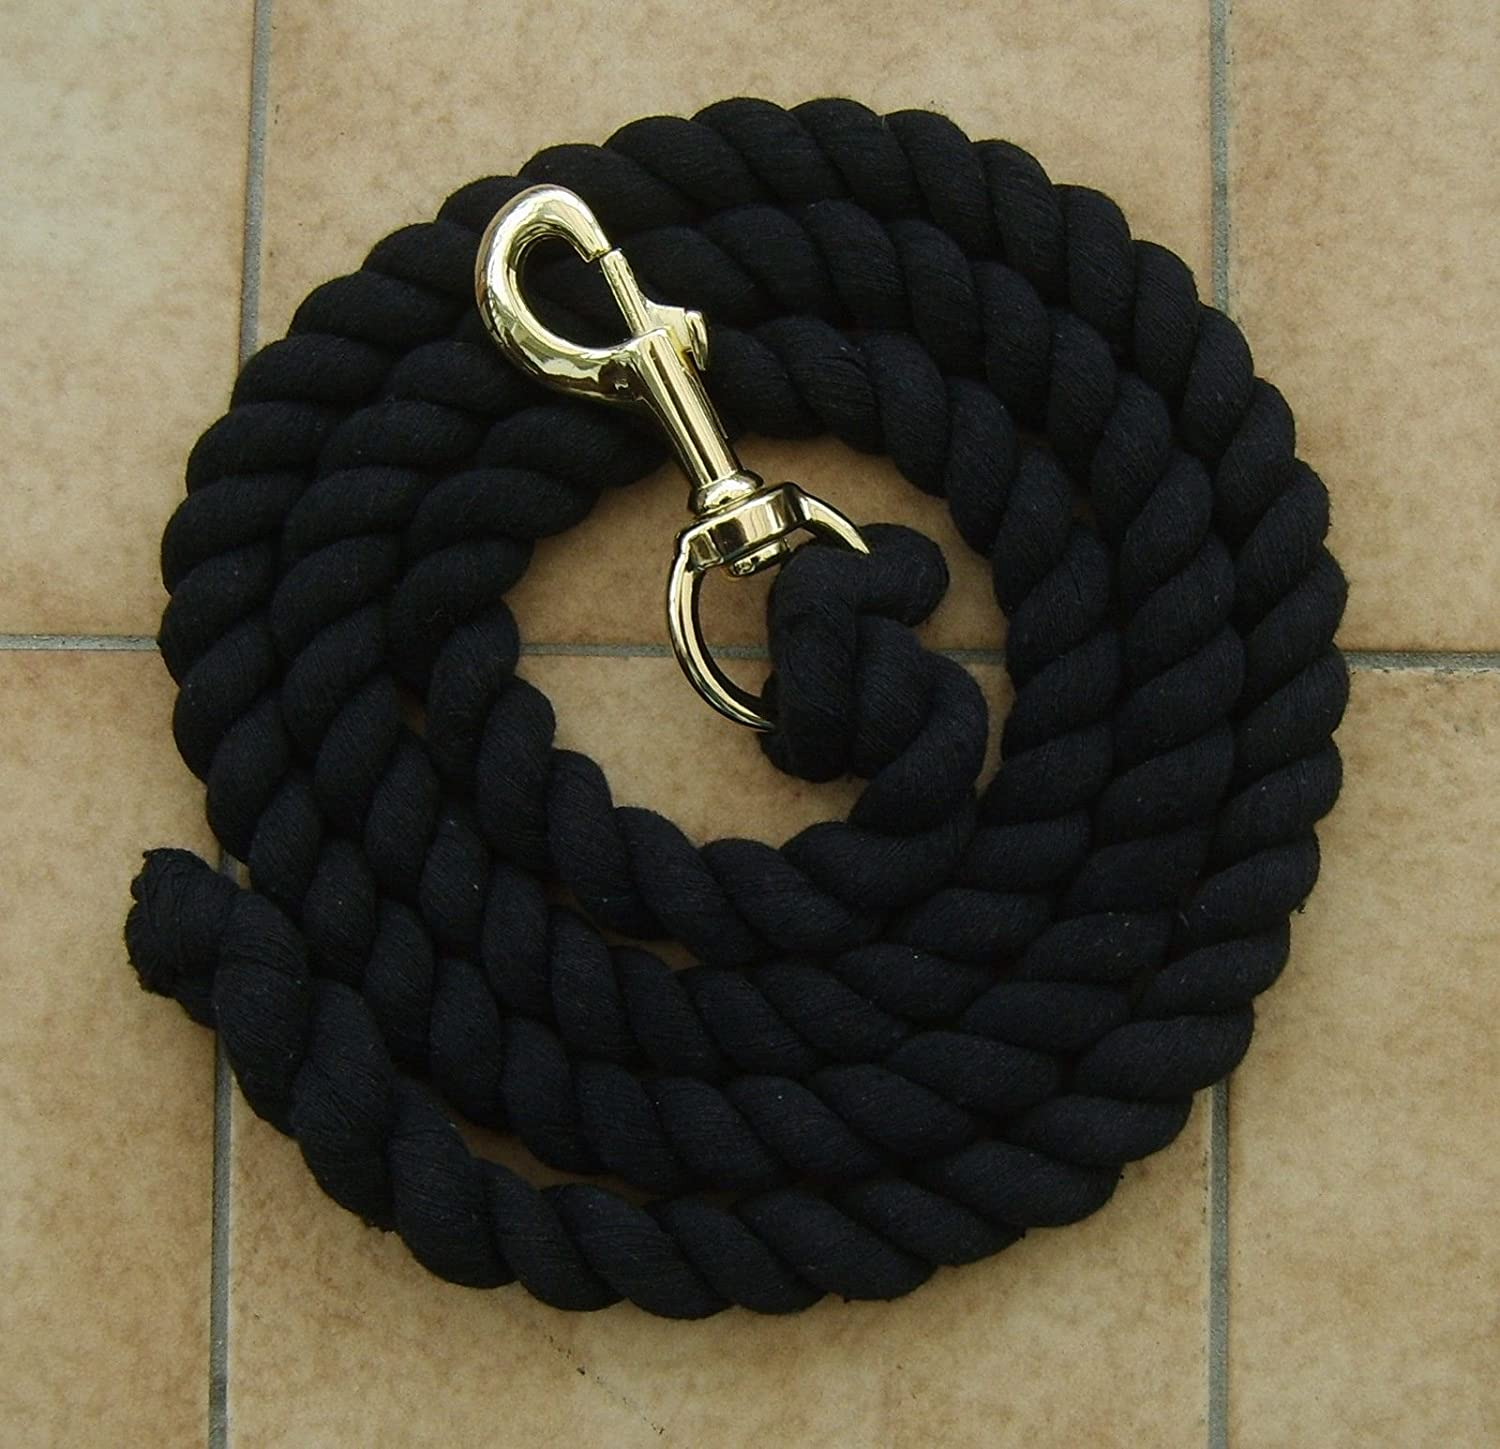 Generic DYHP-A10-CODE-5902-CLASS-1-- for horse or dogs 2 METRES SOFT or hors HEAVY DUTY LEAD LEAD ROPE EAVY DU-DYHP-UK10-160918-11